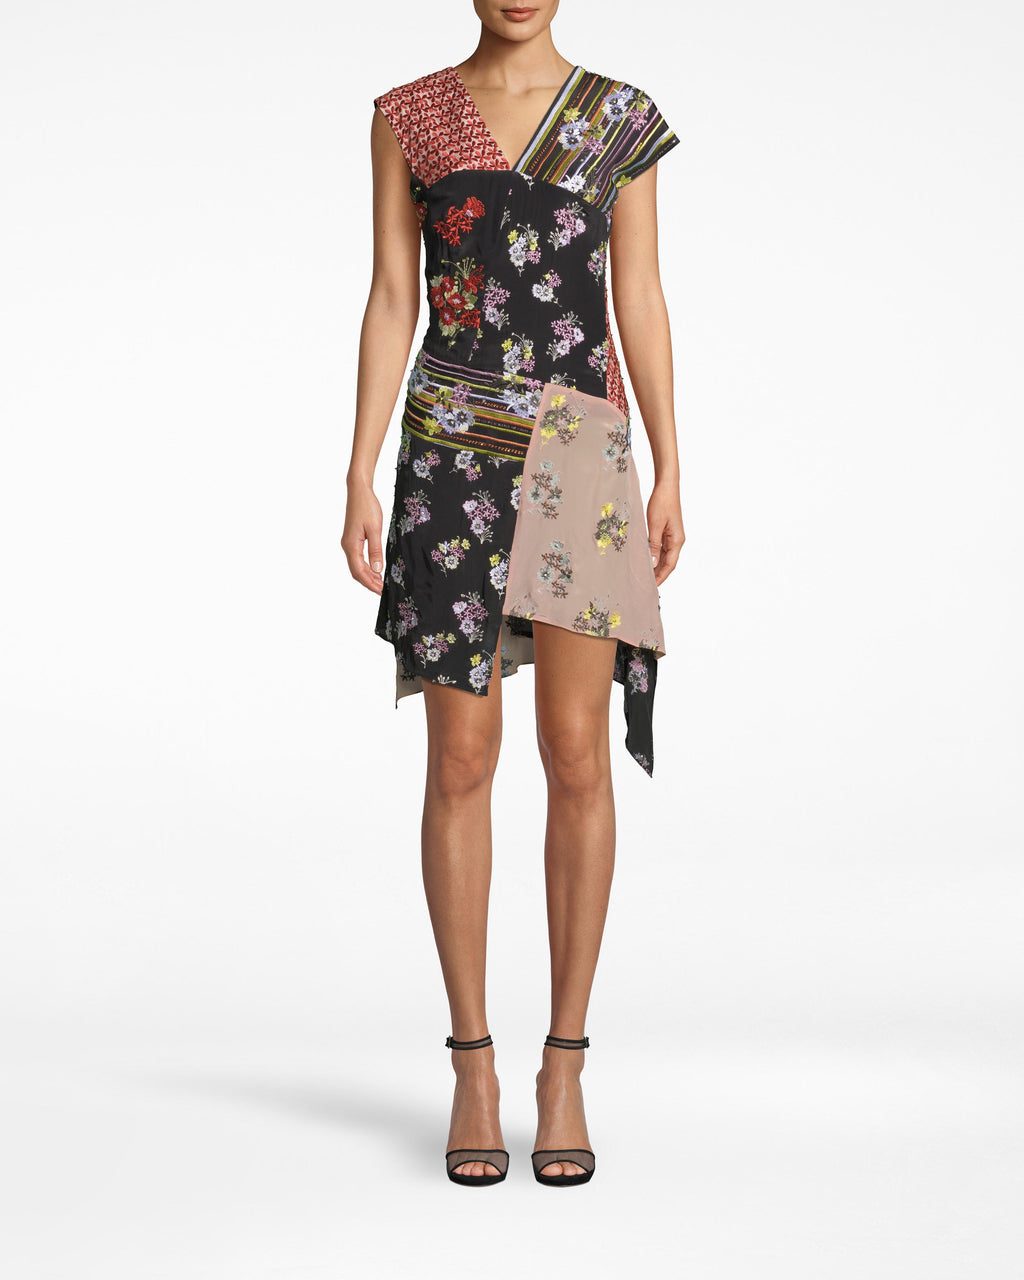 DM10050 - PROVENCE FLORAL EMBELLISHED PATCHWORK ASYMMETRICAL DRESS - dresses - short - THIS DETAILED MINI WILL HAVE YOU TURNING HEADS ALL NIGHT. THIS RUNWAY STYLE FEATURES A SLIGHT CAPE SLEEVE, V NECKLINE AND AN ASYMMETRICAL HEM FOR ADDED TEXTURE. EMBELLISHED THROUGHOUT WITH BEADS, RHINESTONES AND SEQUINS. FULLY LINED WITH SIDE ZIPPER FOR CLOSURE.